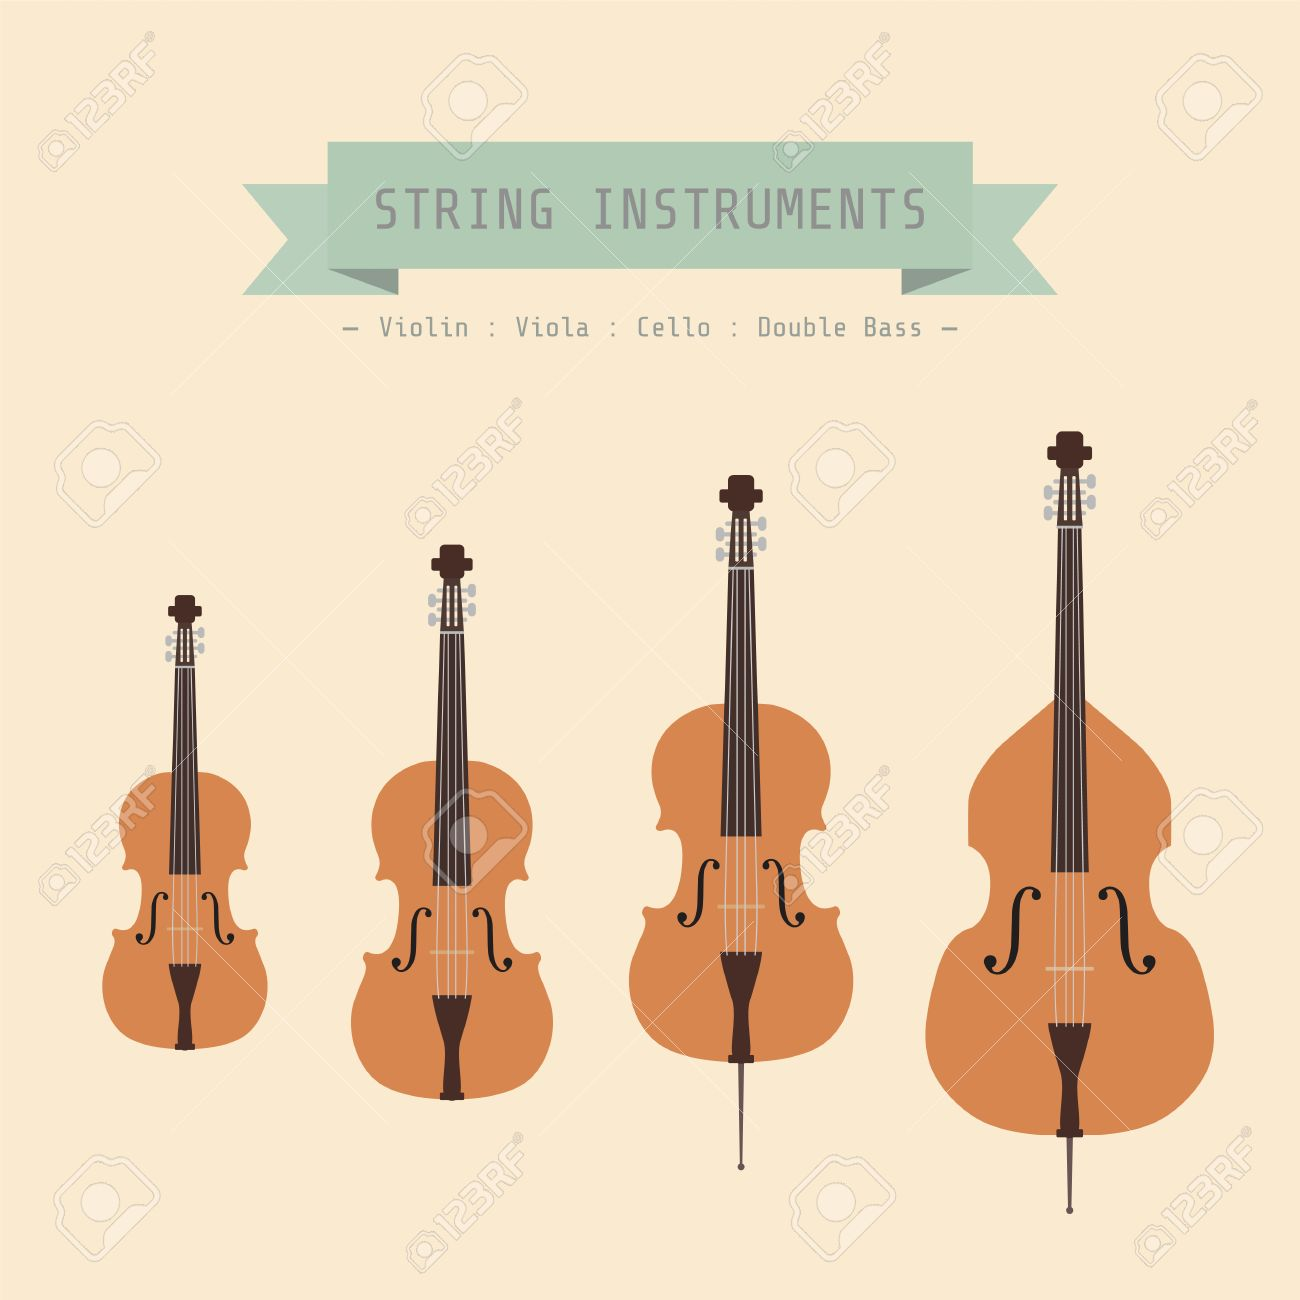 Musical Instrument String, Violin, Viola, Cello and Double Bass,